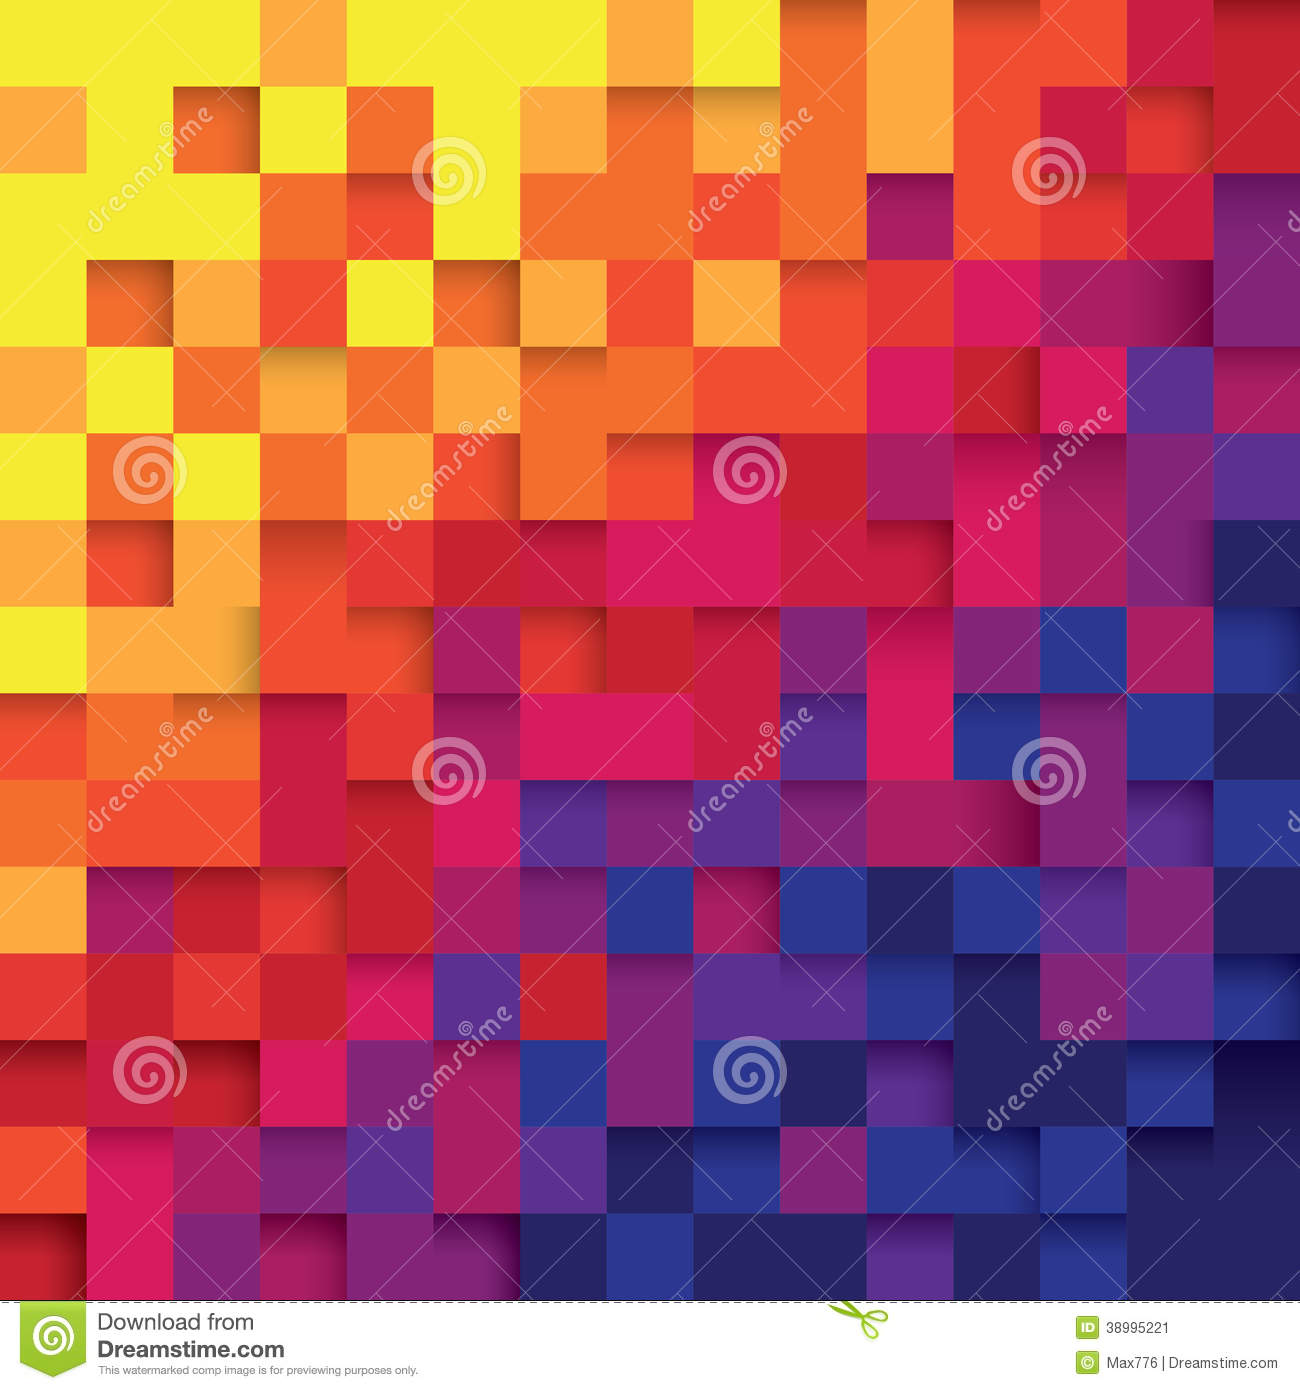 Hd wallpaper triangle - Pixel Color Abstract Background Stock Vector Image 38995221